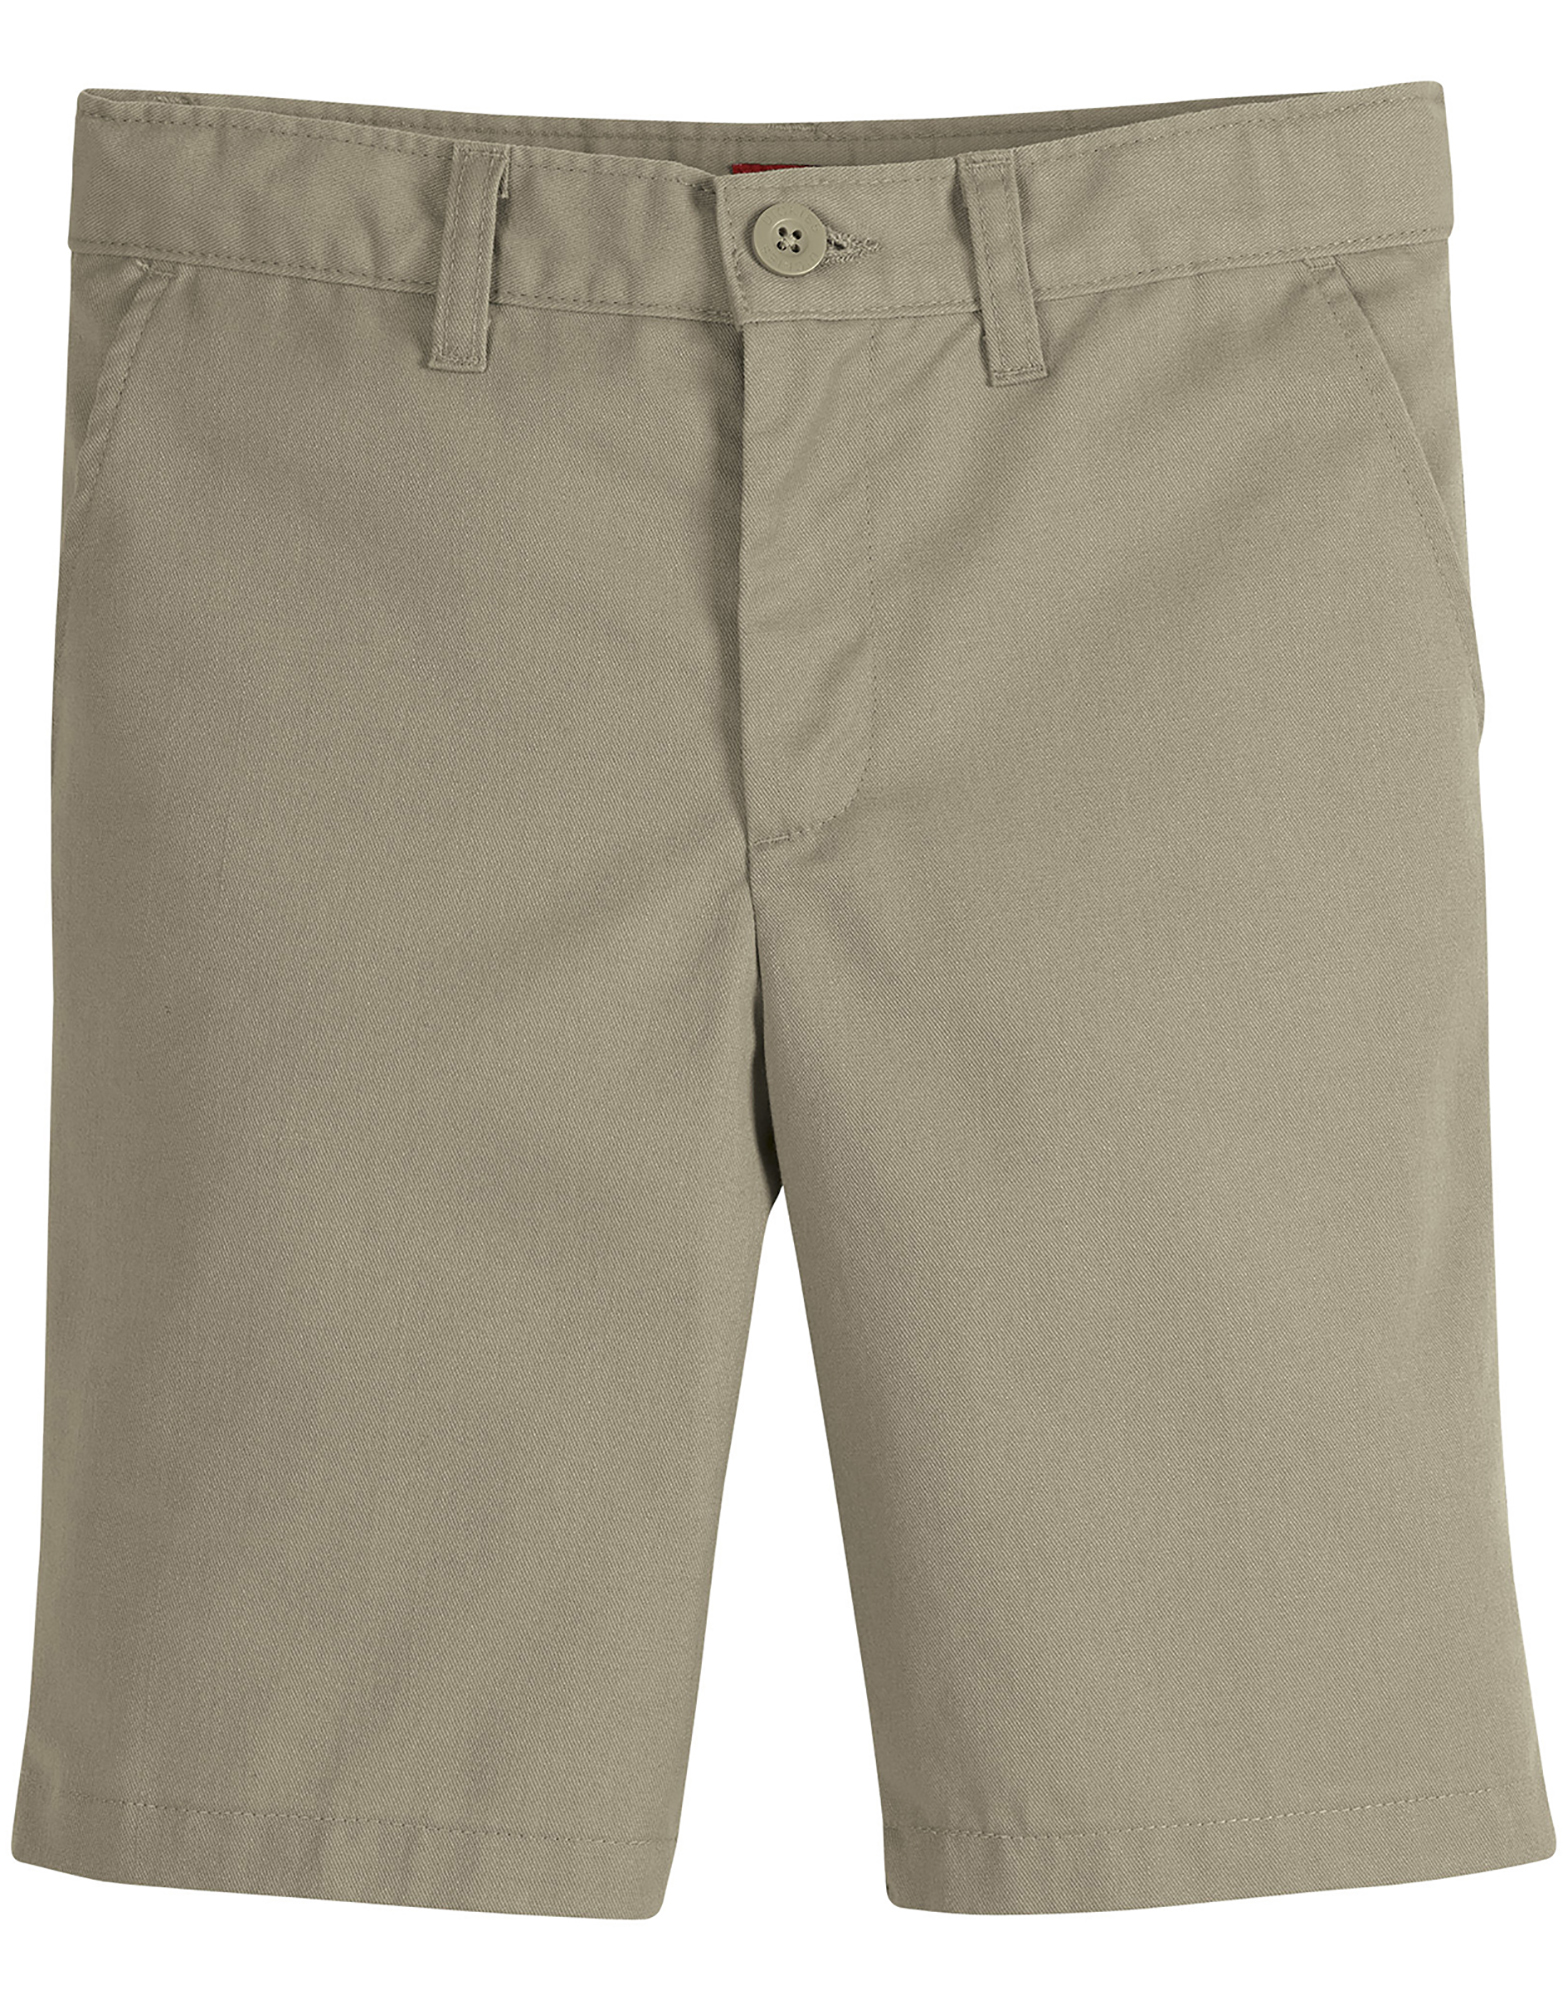 Girls' FlexWaist® Slim Fit Flat Front Shorts (Plus), 10.5 - 16.5 - Desert Khaki (DS)